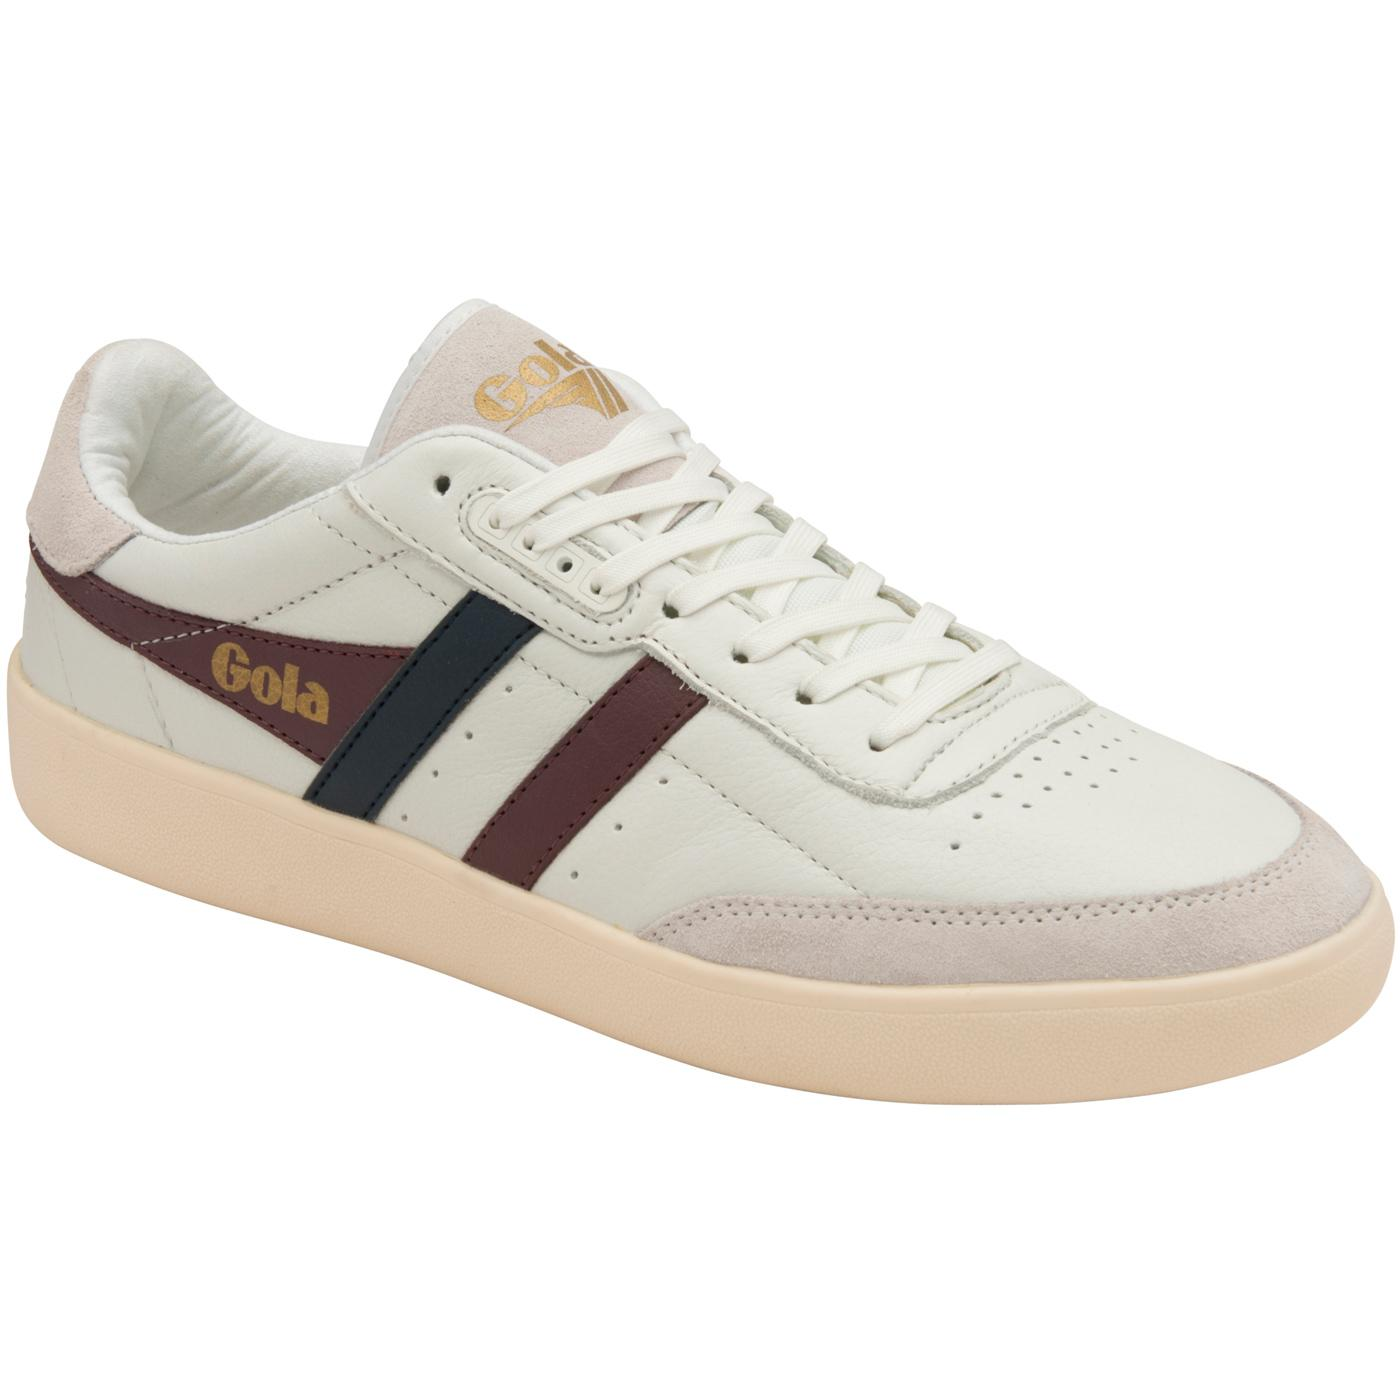 Inca GOLA CLASSICS Mens Leather Court Trainers W/B